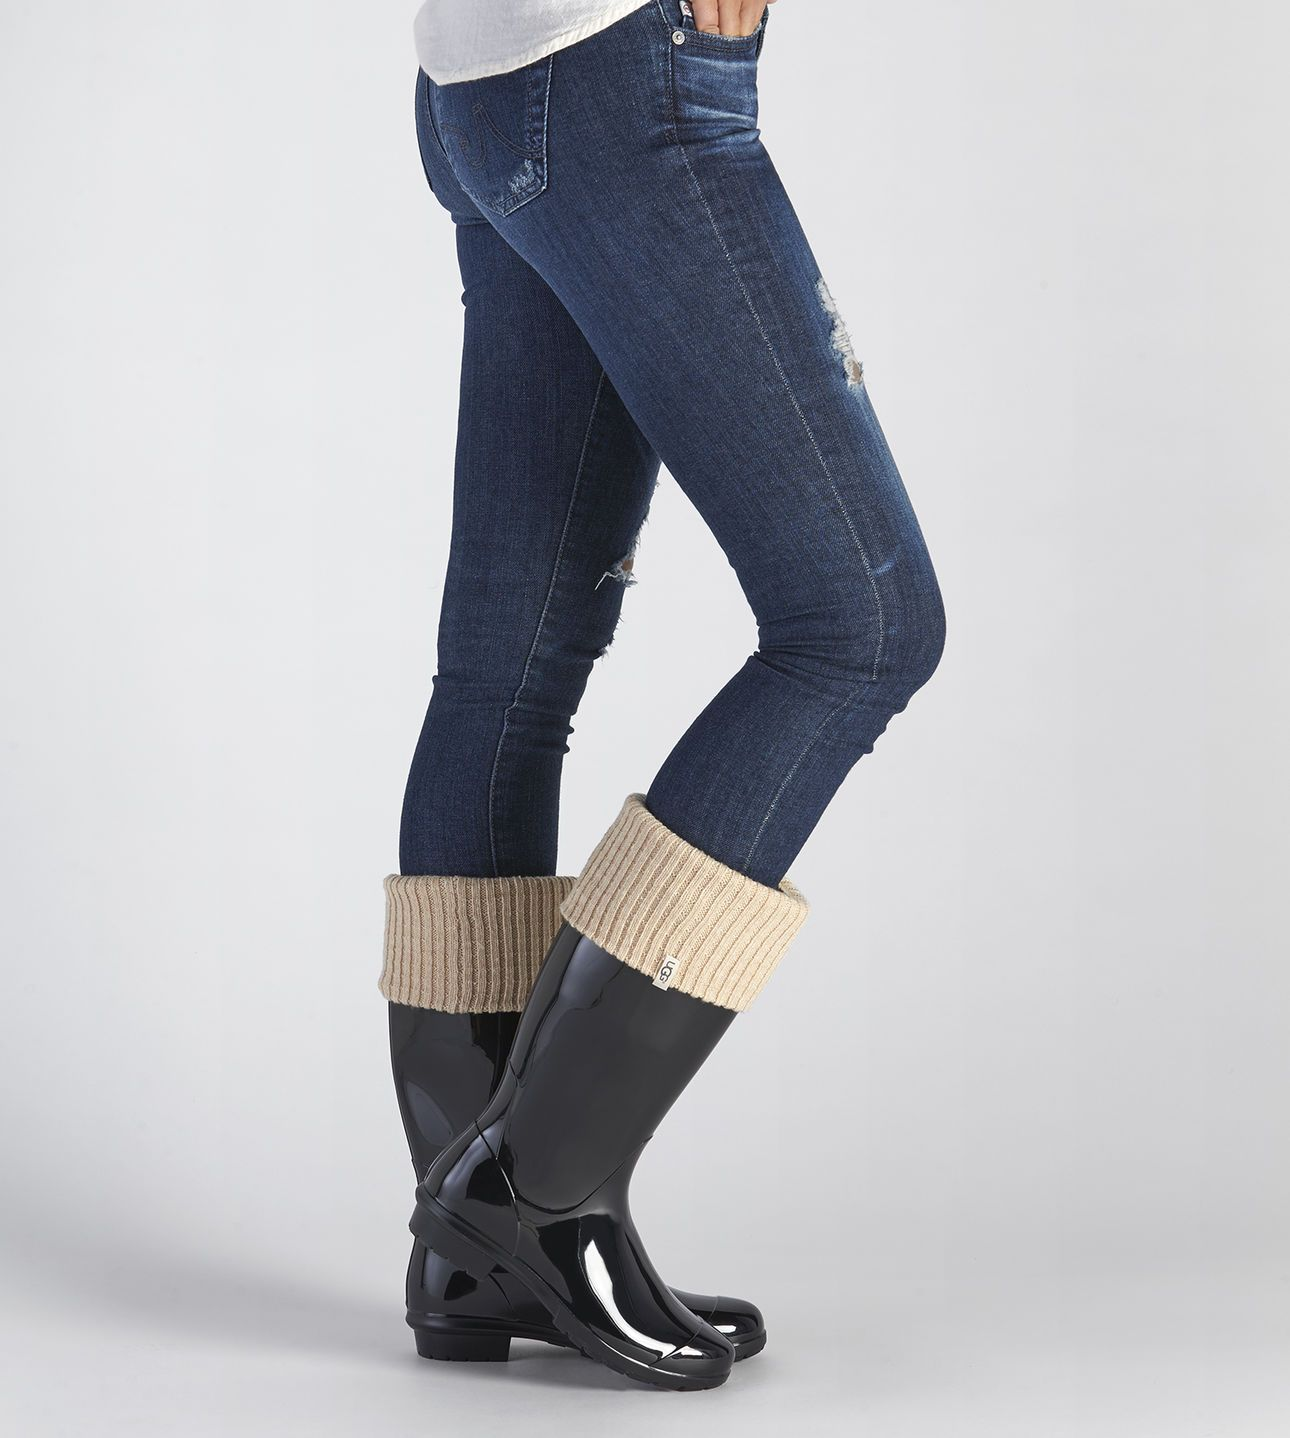 b2042e6033b Women's Share this product Shaye Tall Rainboot Sock | Cold Weather ...